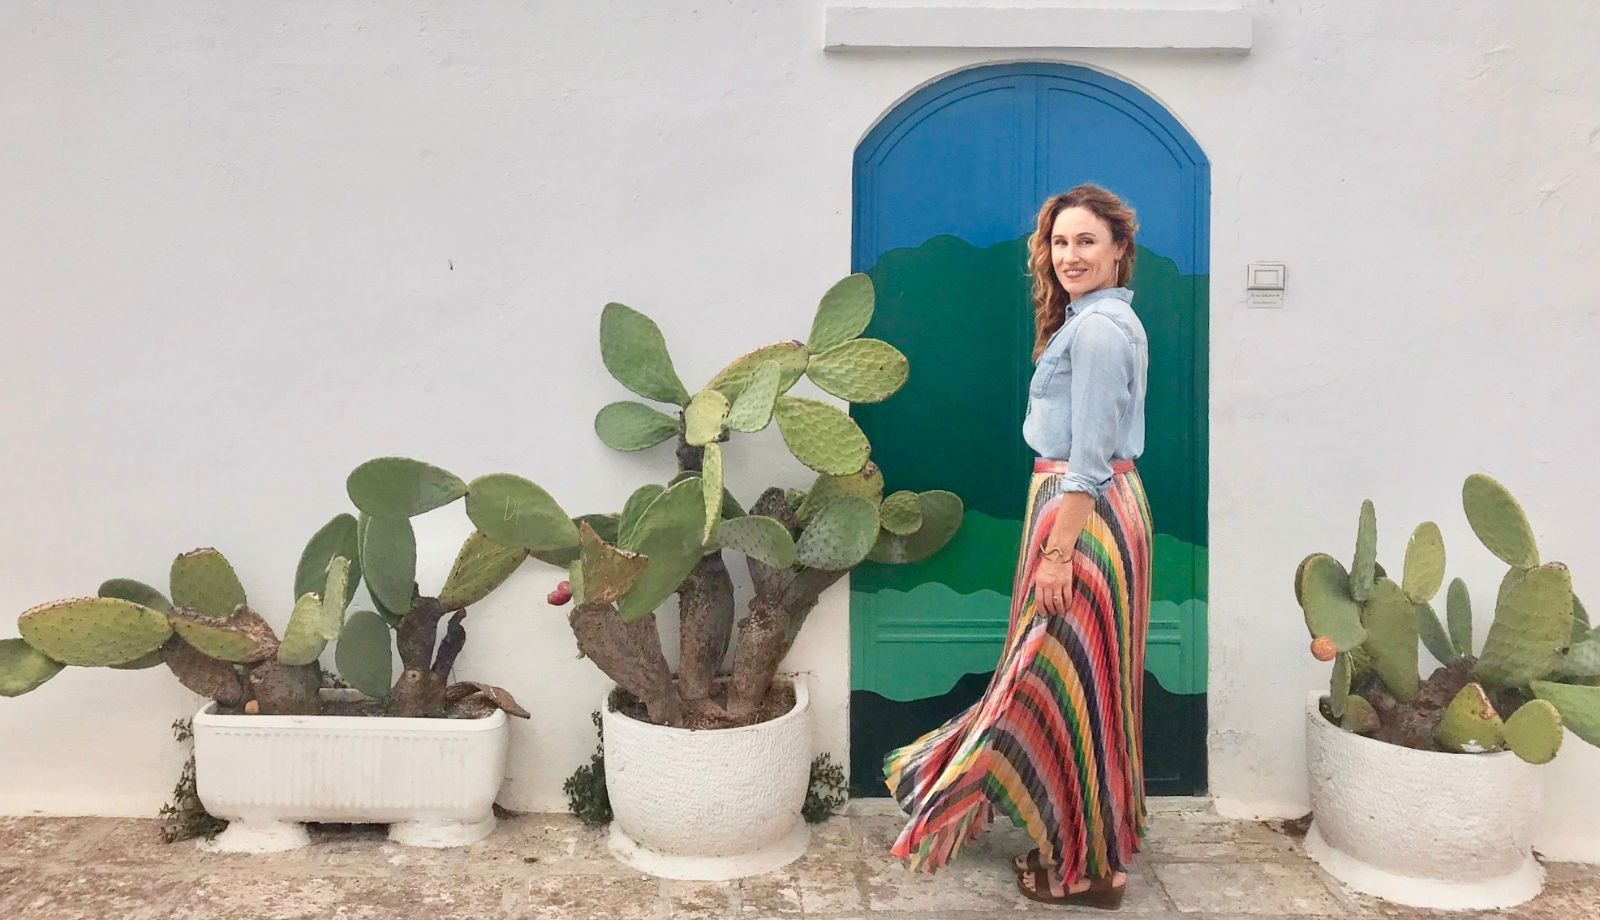 Woman in rainbow colored skirt in front of prickly pear cactus and white adobe wall